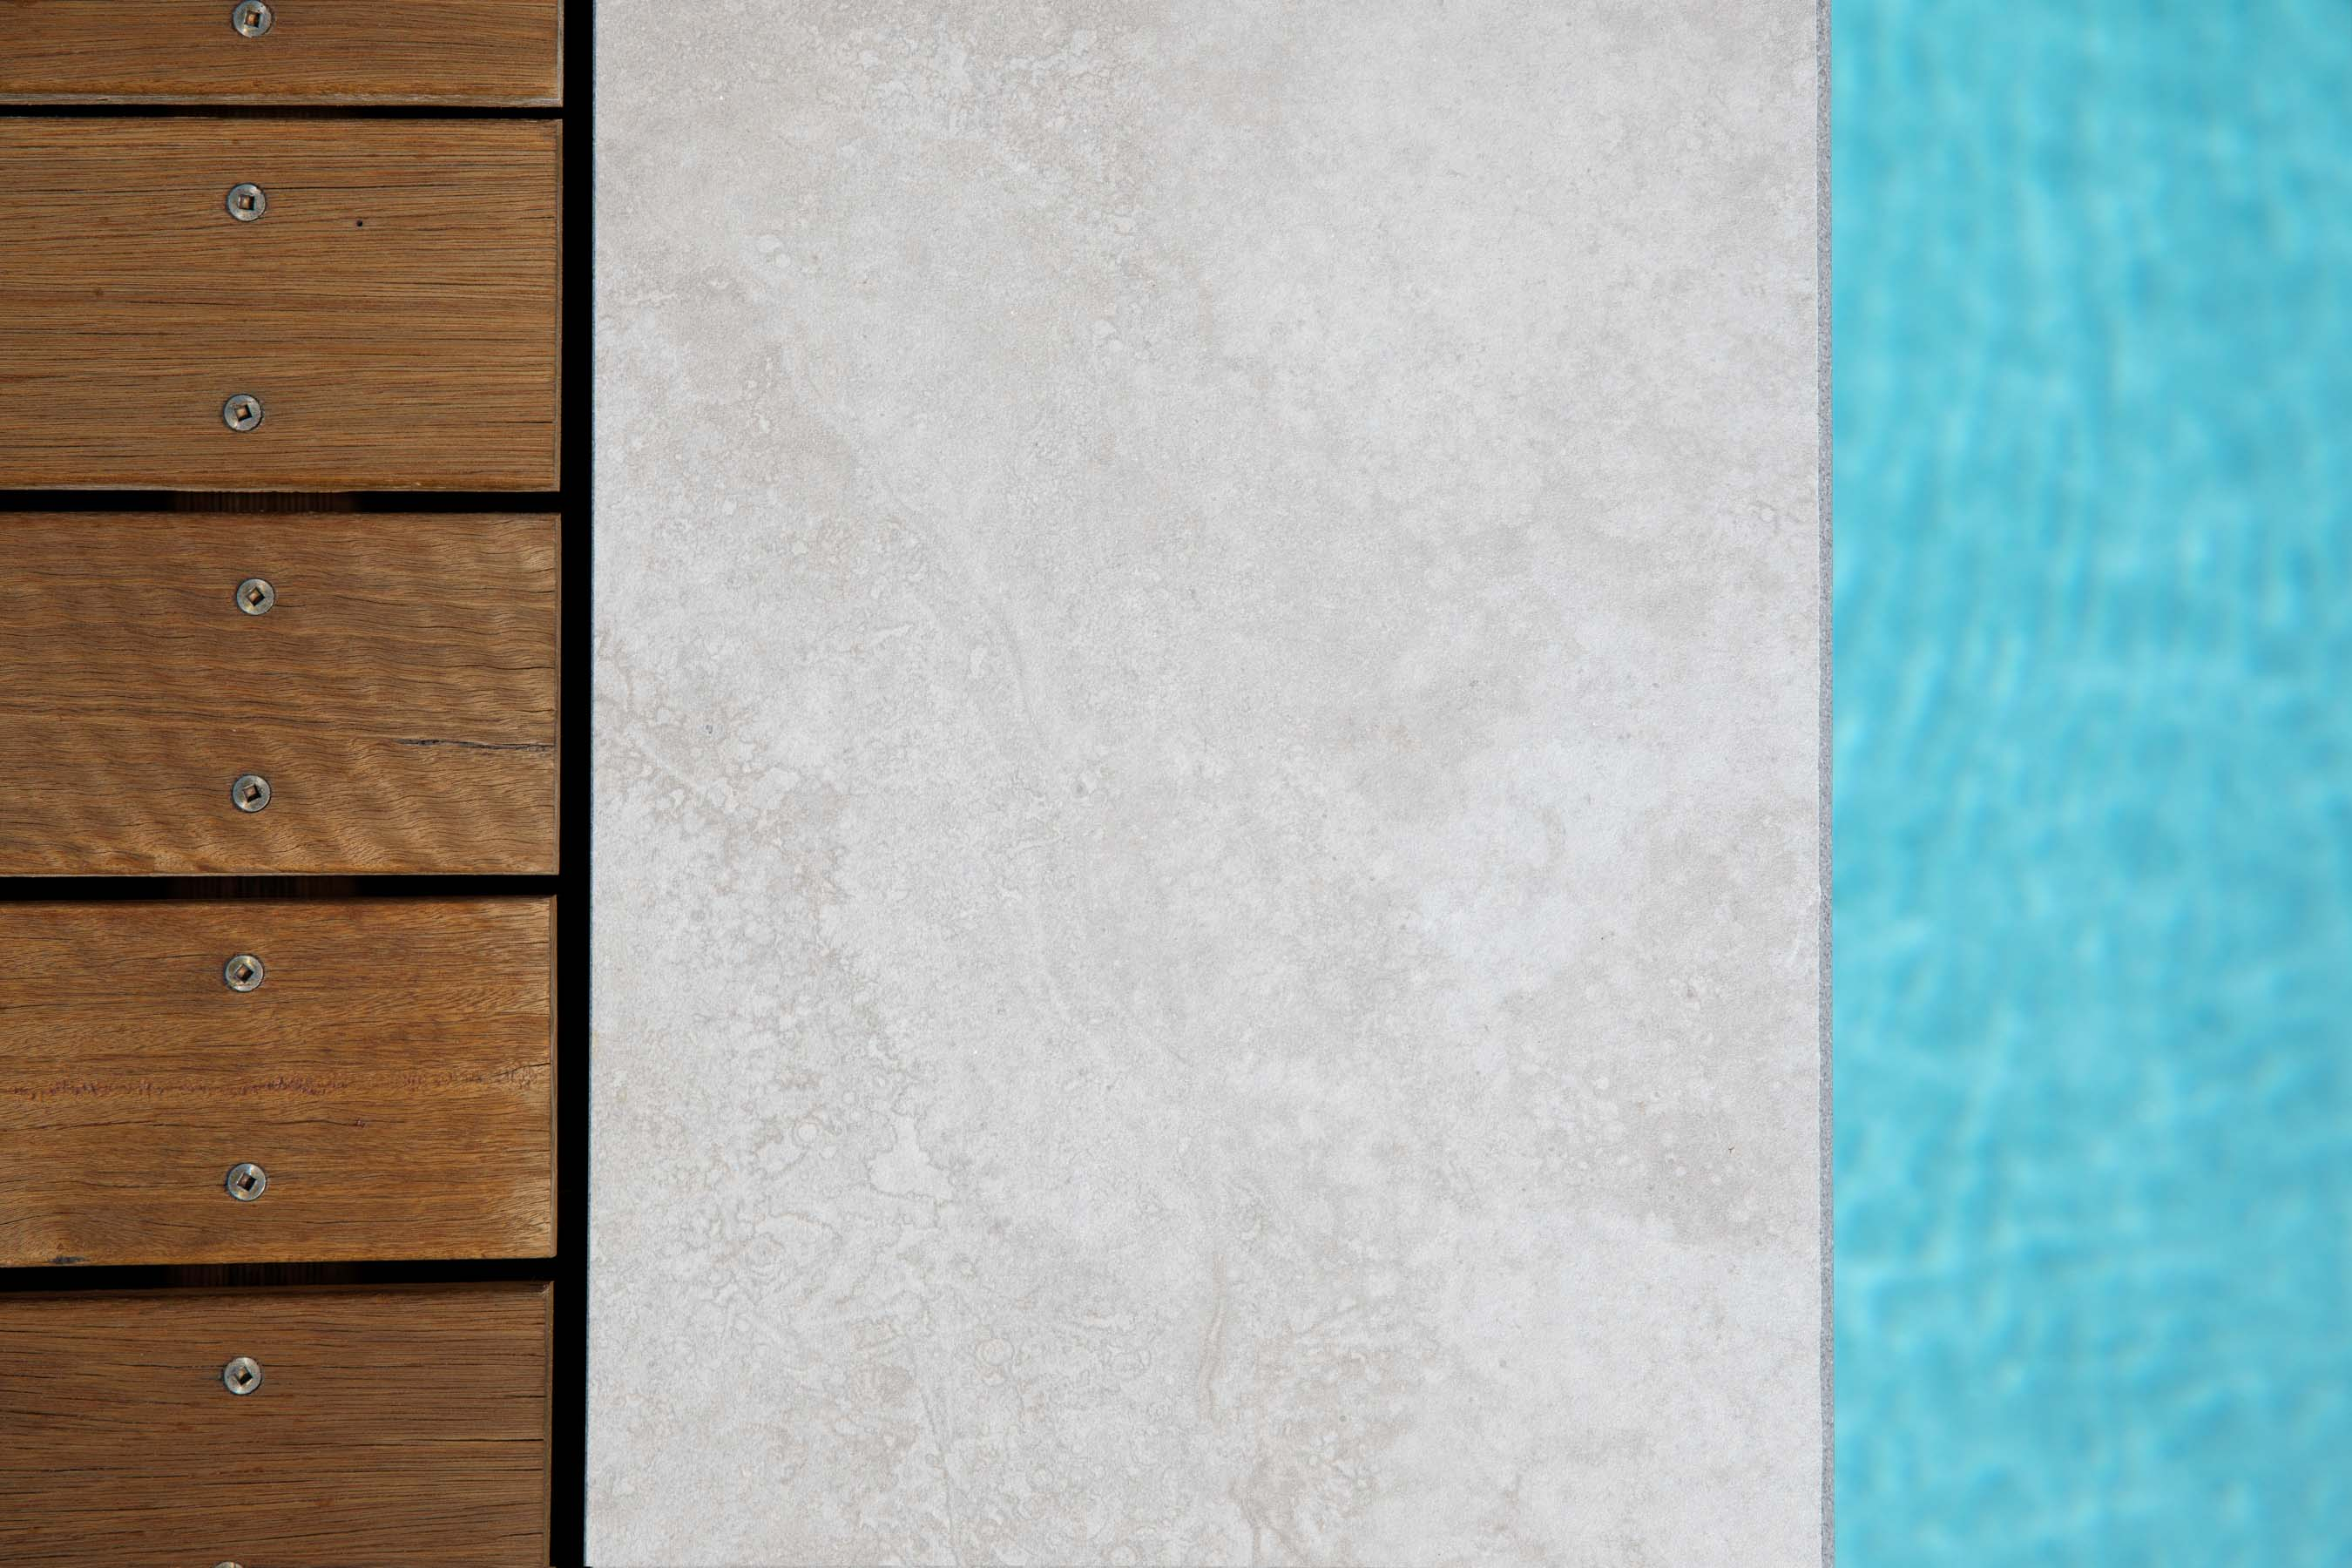 Porcelain-Pavers-Outdoor-20 Gallery silver-travertine-02